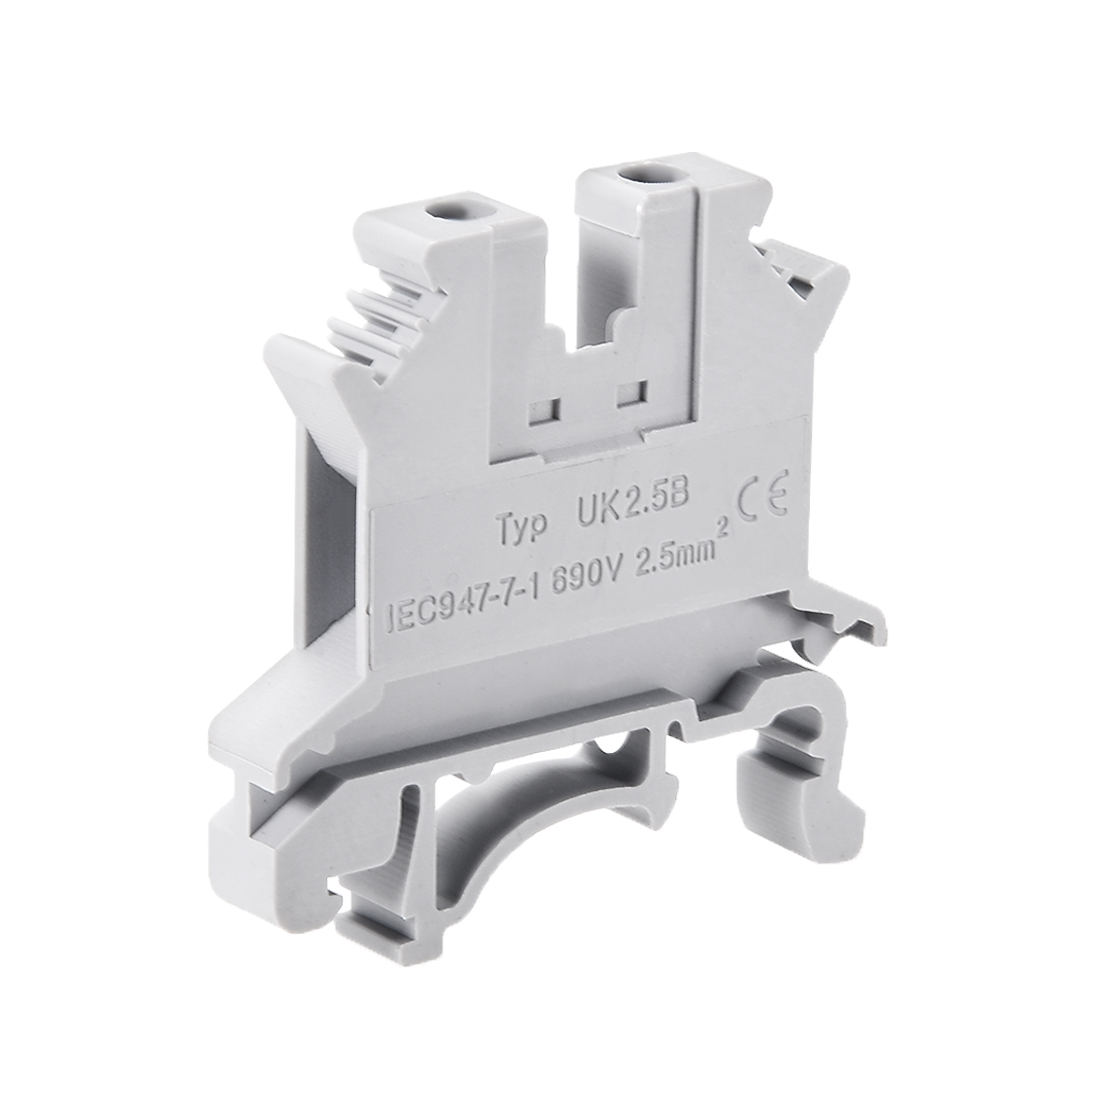 UK2.5B DIN Rail Terminal Block Screw Clamp Connector 690V 32A Gray for 24-16 AWG